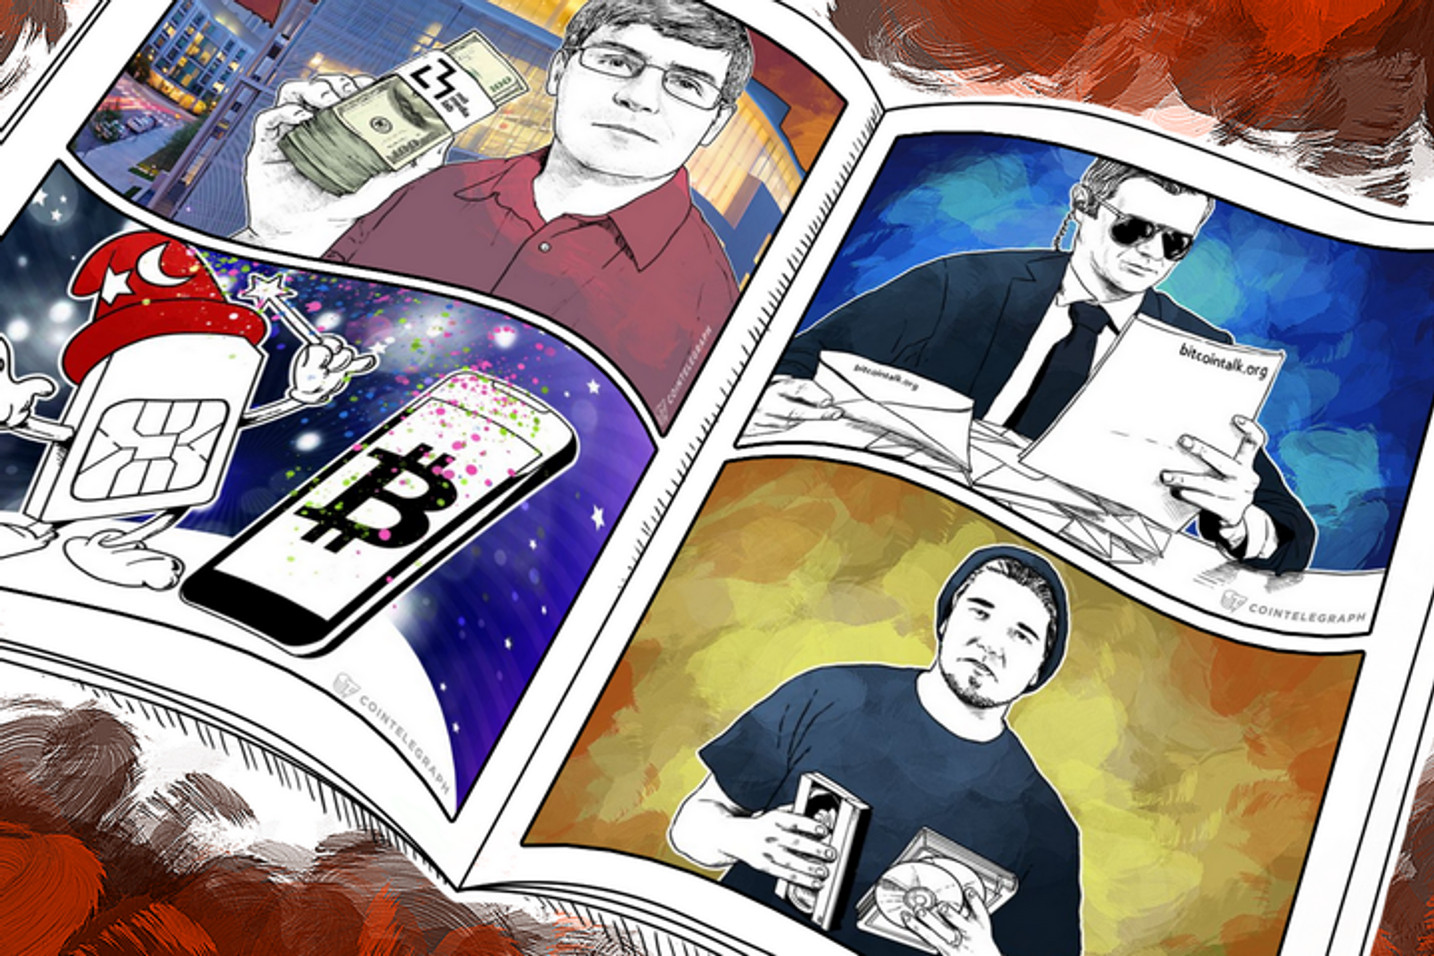 Weekend Roundup: MIT Takes Over Bitcoin Core Dev Funding, Blocktech Announces P2P, Decentralized Library